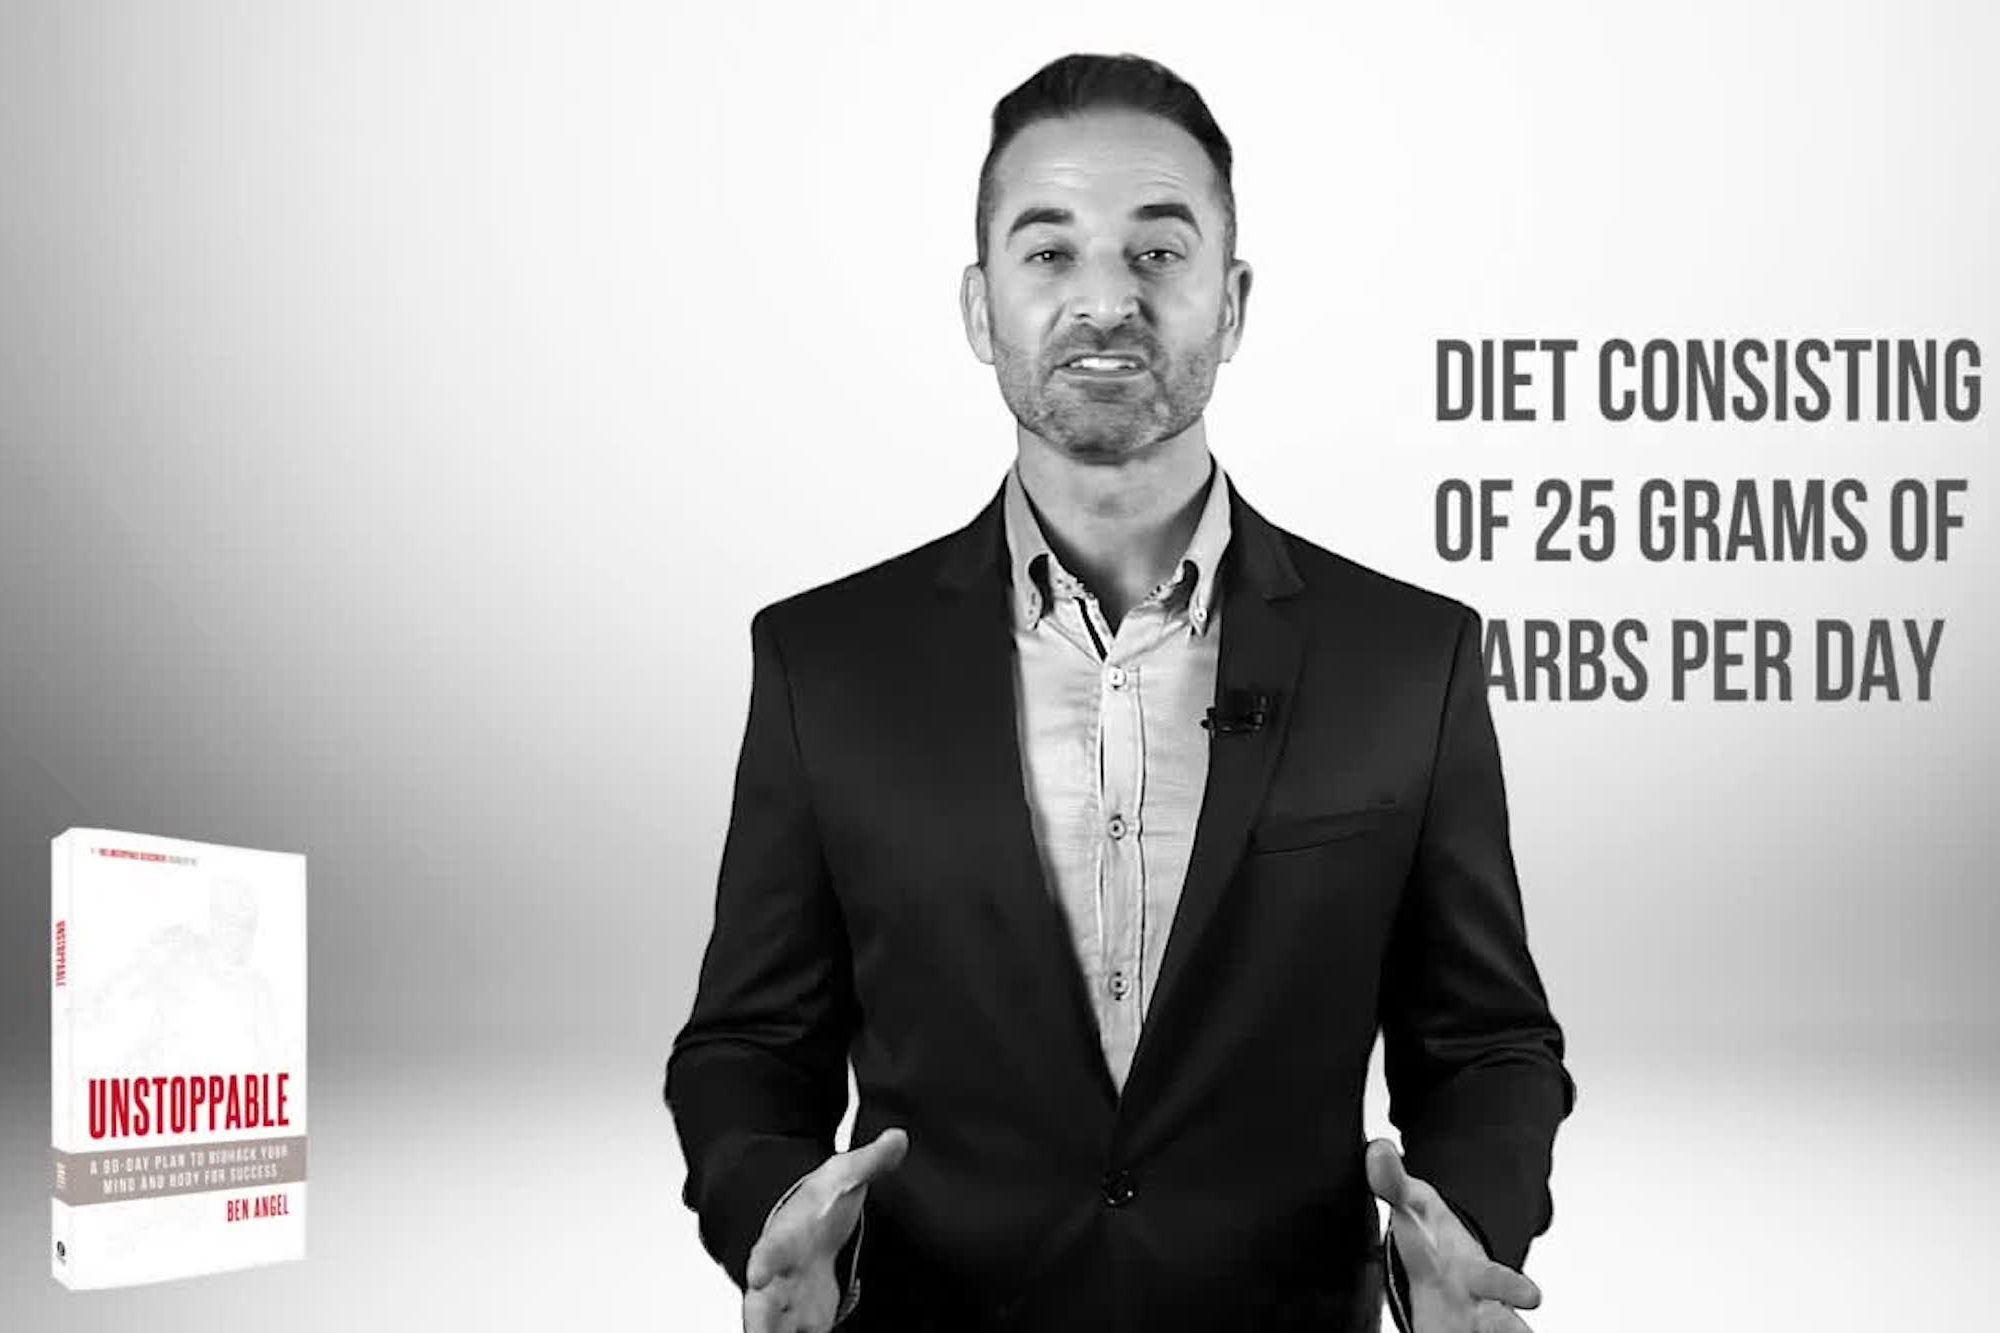 Should Entrepreneurs Do the Keto Diet to Increase Their Energy and Focus?